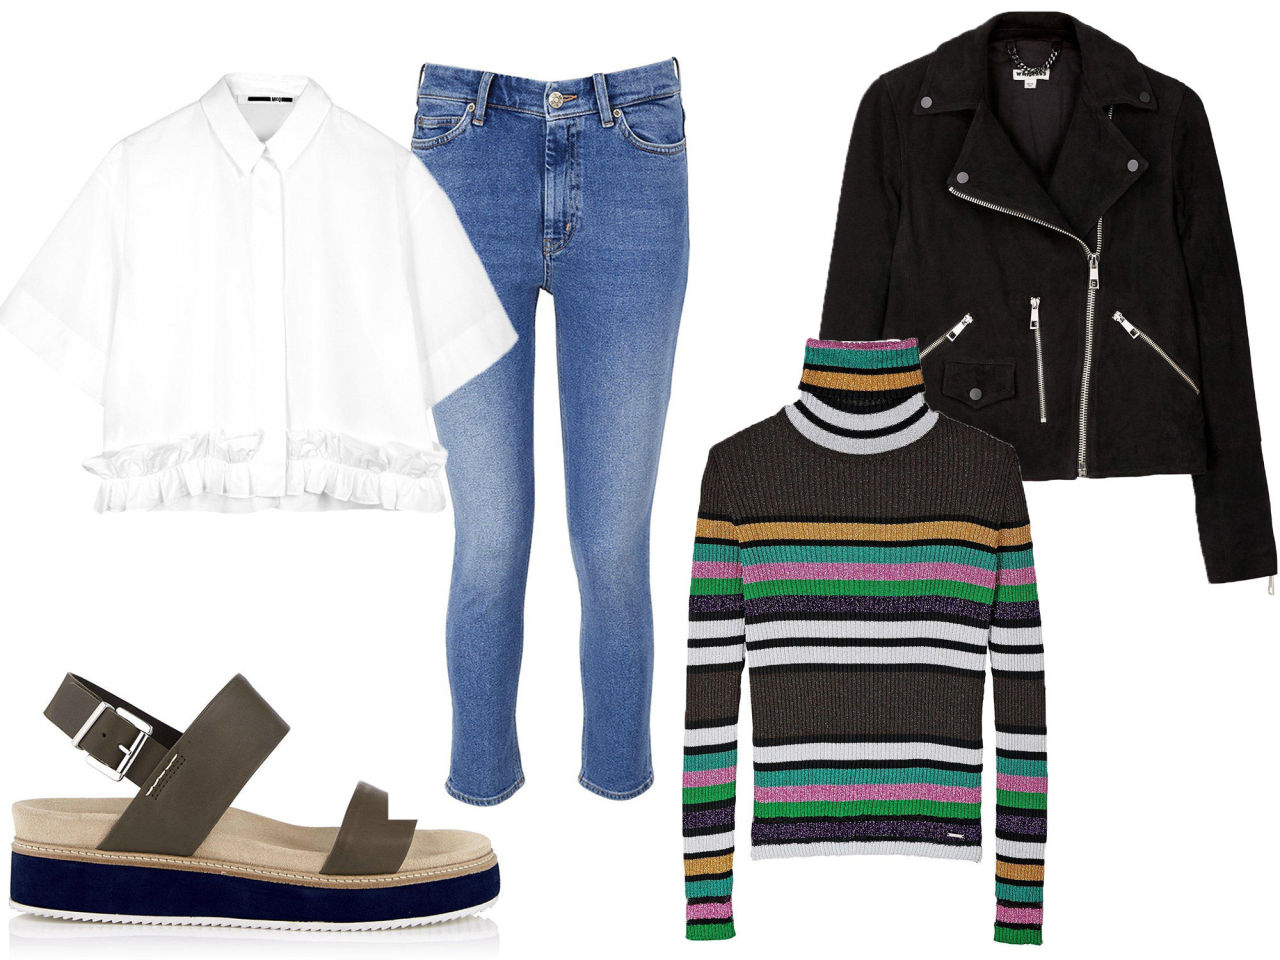 How to layer from Feb to June - boxy shirt and polo